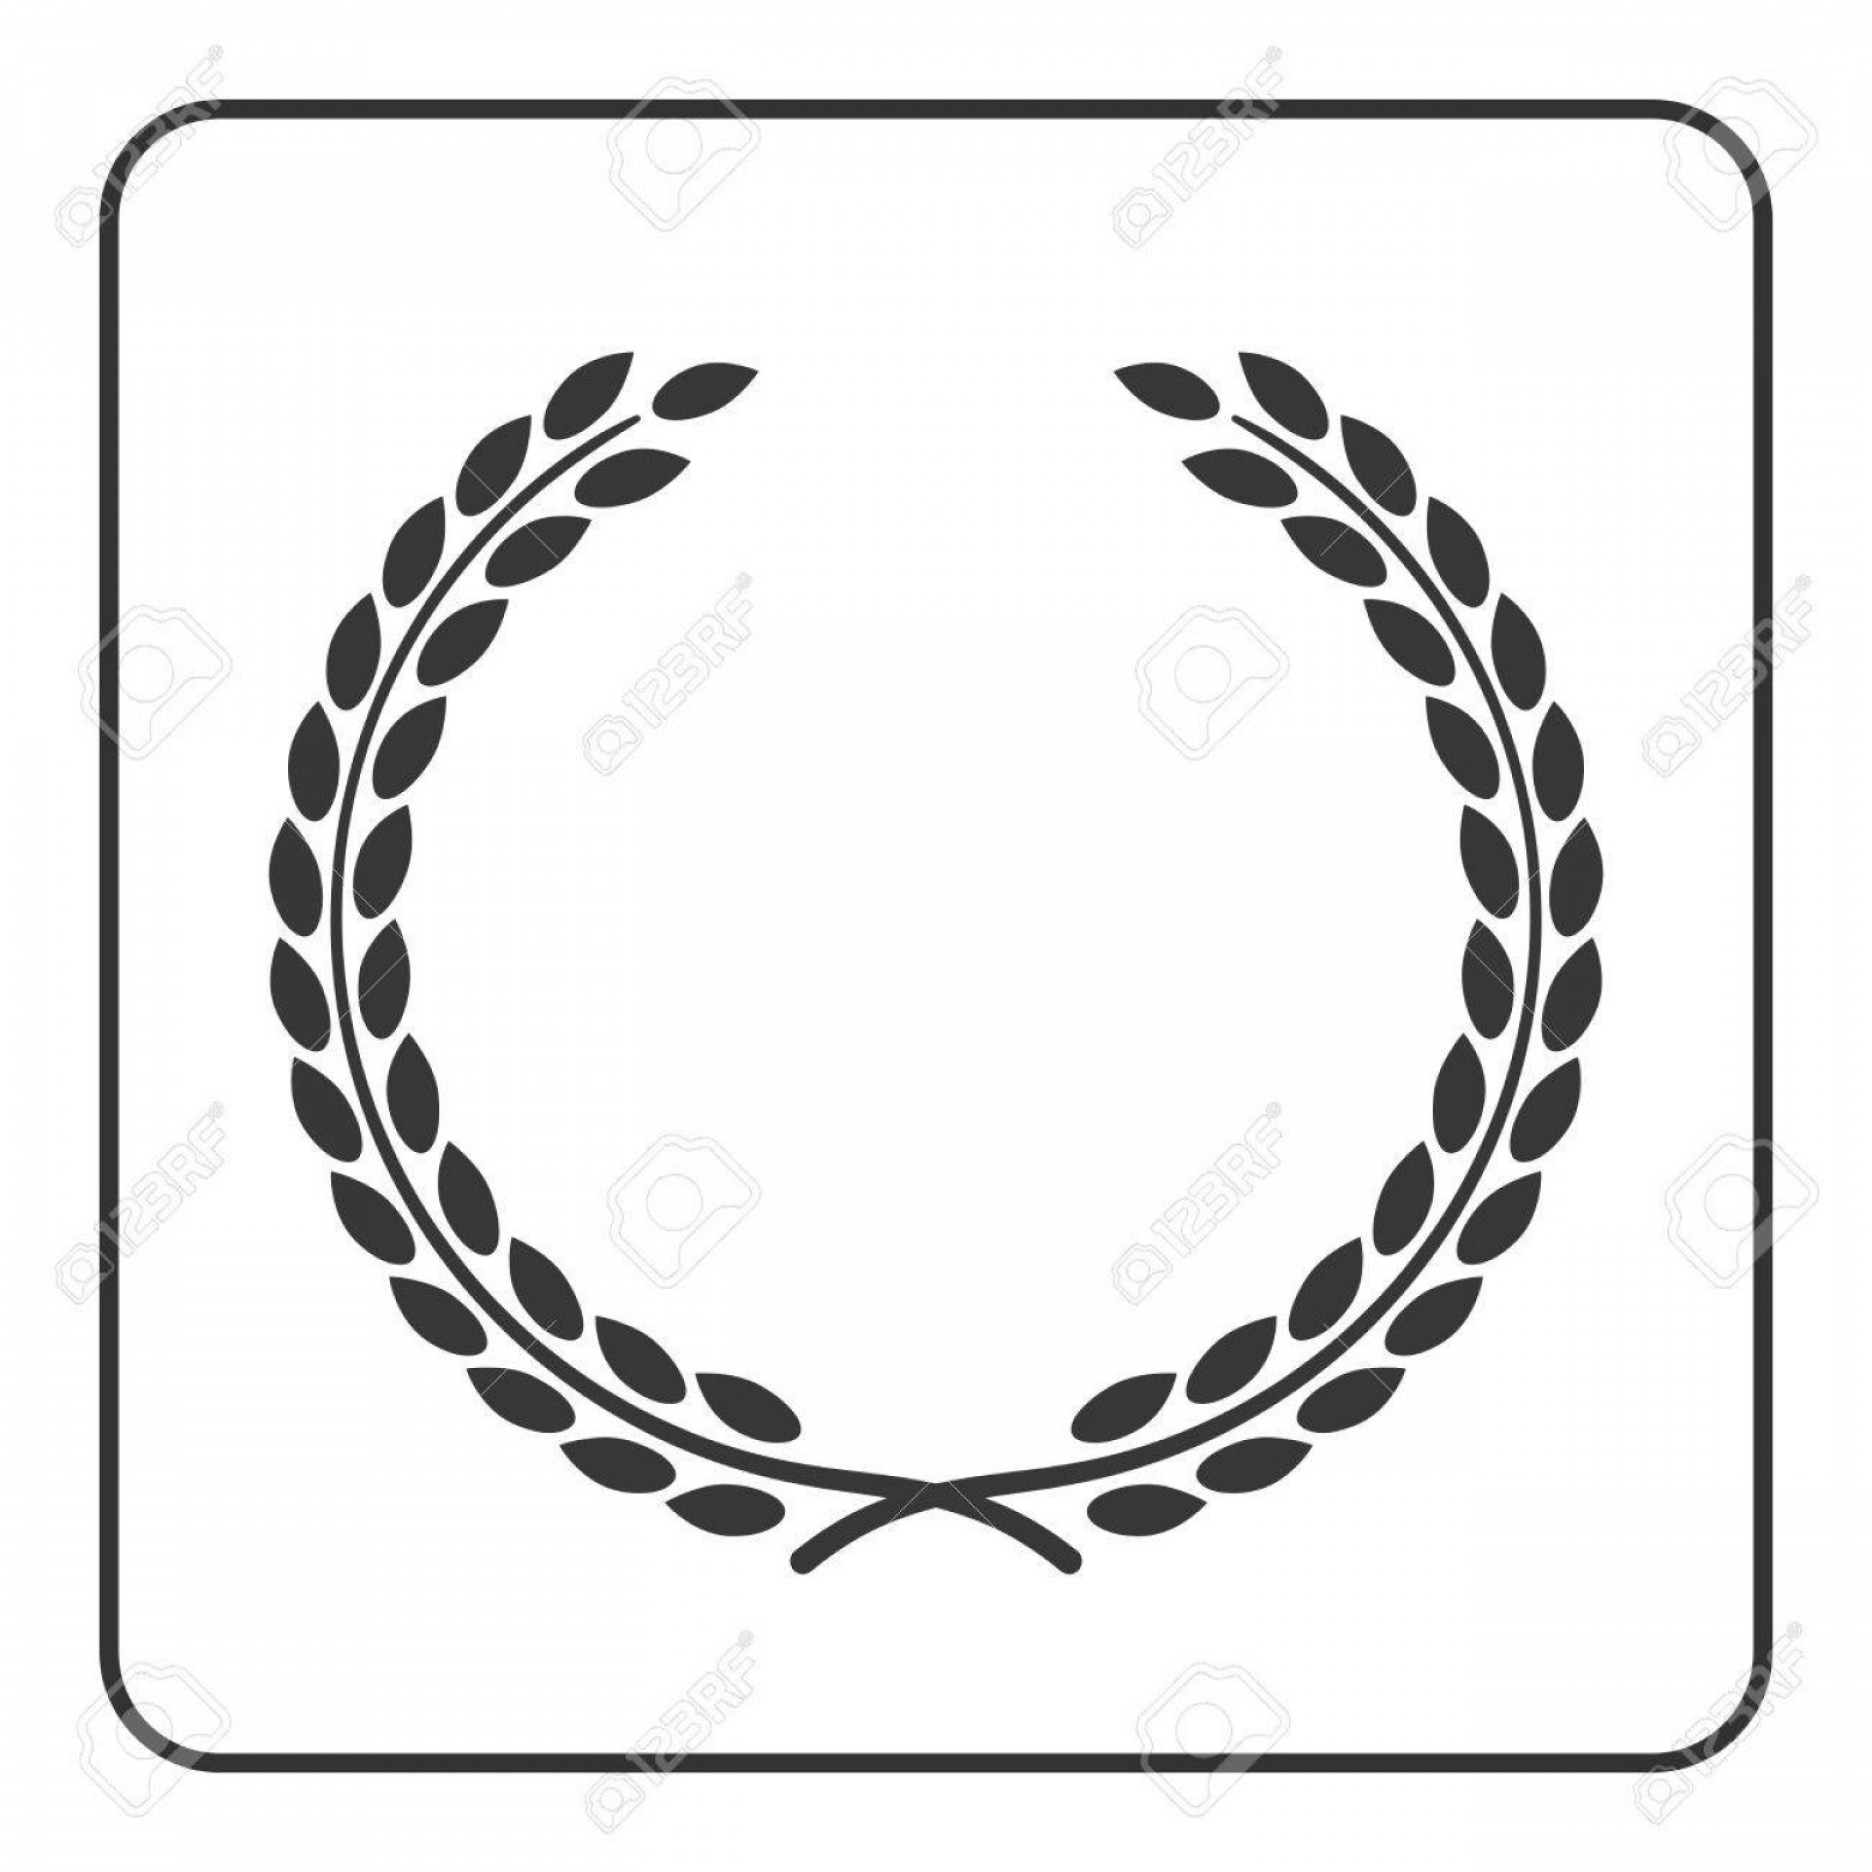 Wheat Wreath Vector Art: Photostock Vector A Laurel Or Wheat Wreath Icon Symbol Victory Achievement And Grain Natural Food Design Element For M